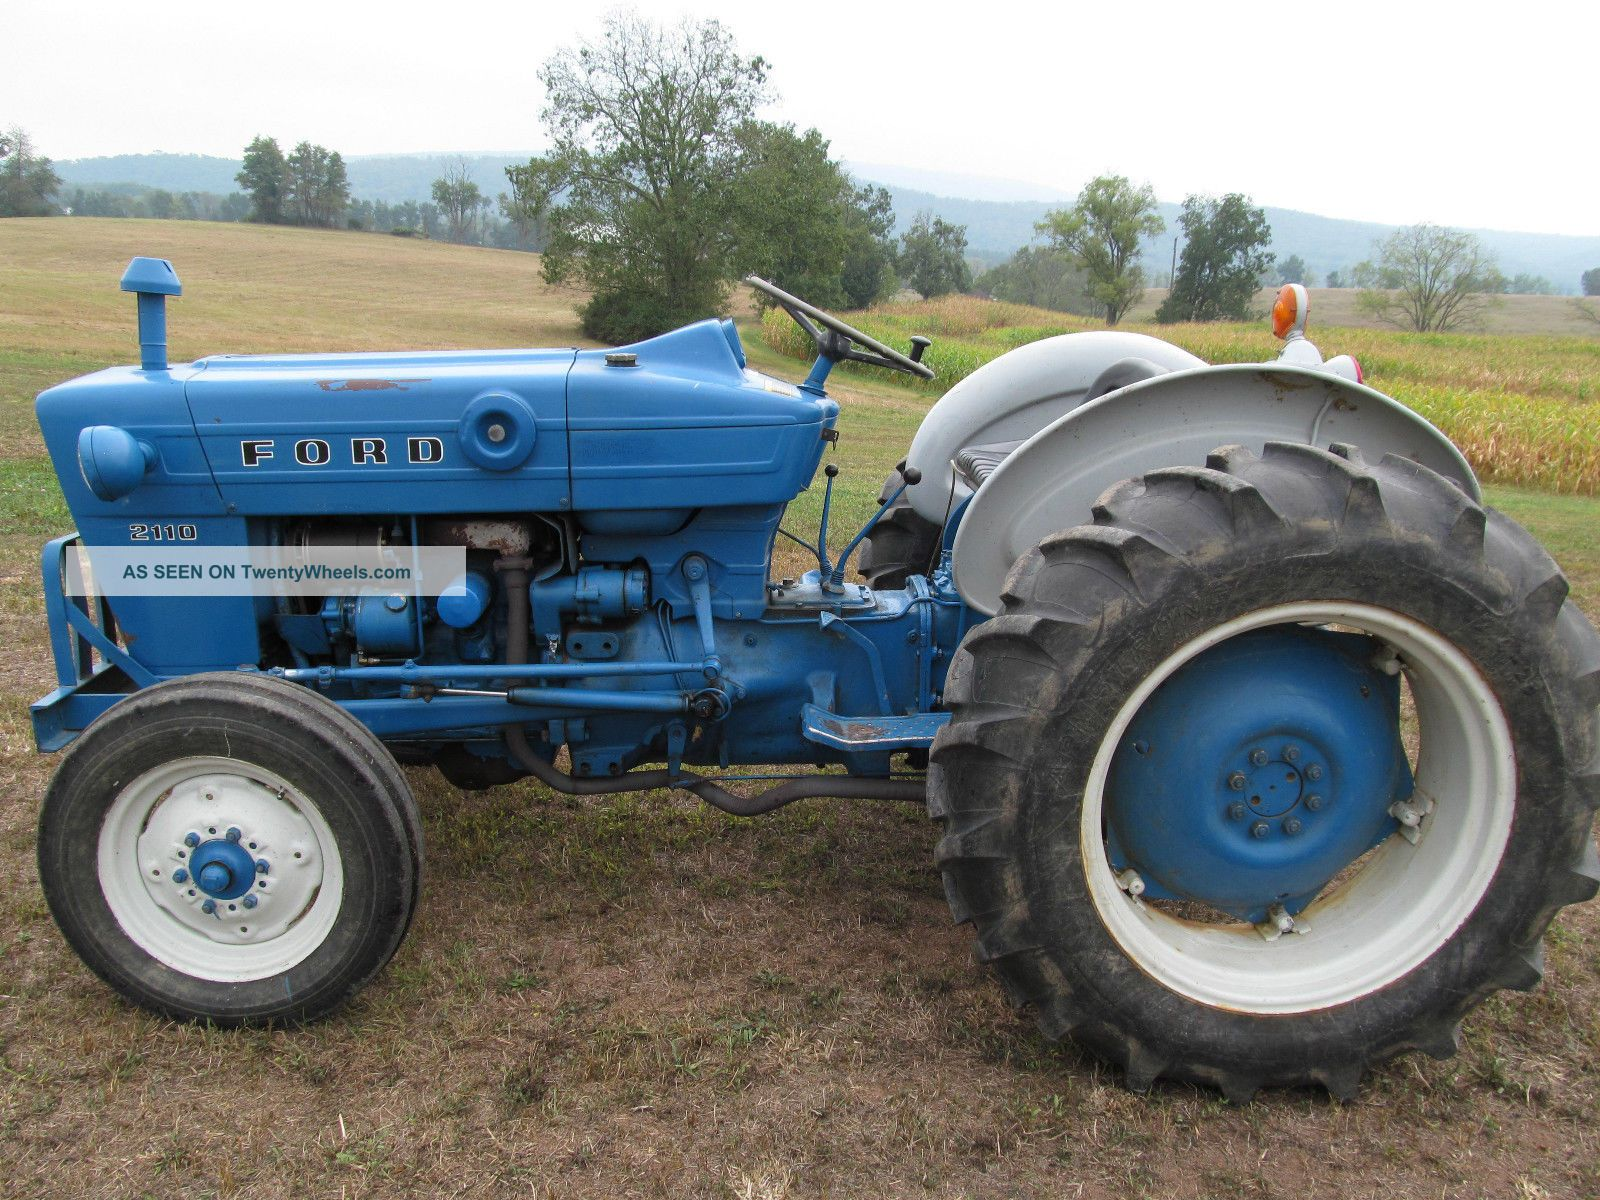 1973 Ford 2000 Tractor Parts Pictures to Pin on Pinterest ...